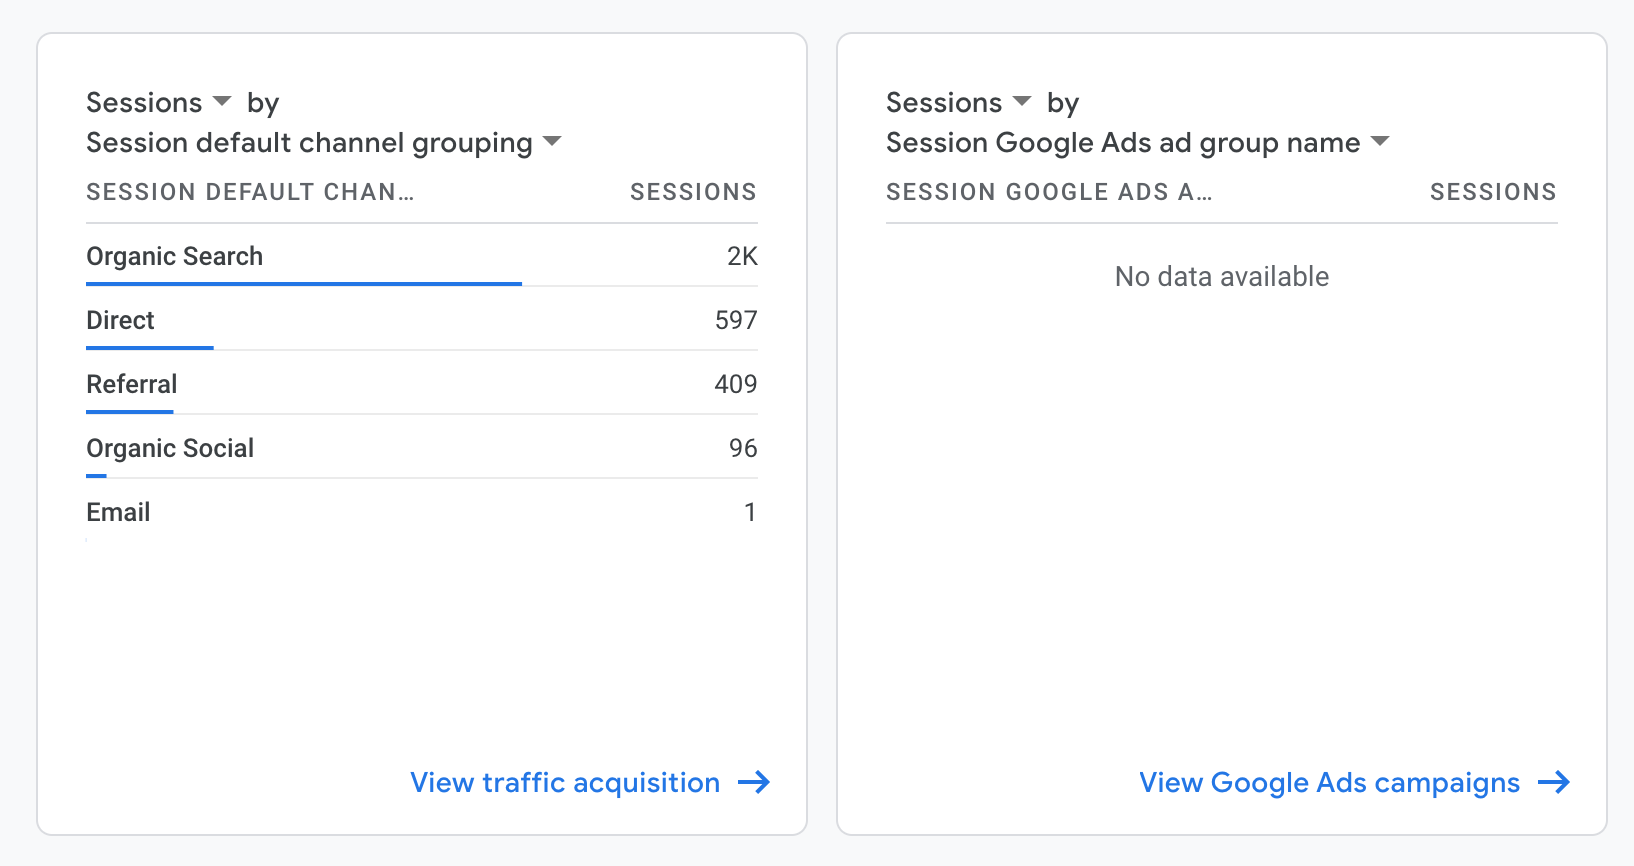 top google analytics metric 6 is sessions by channel